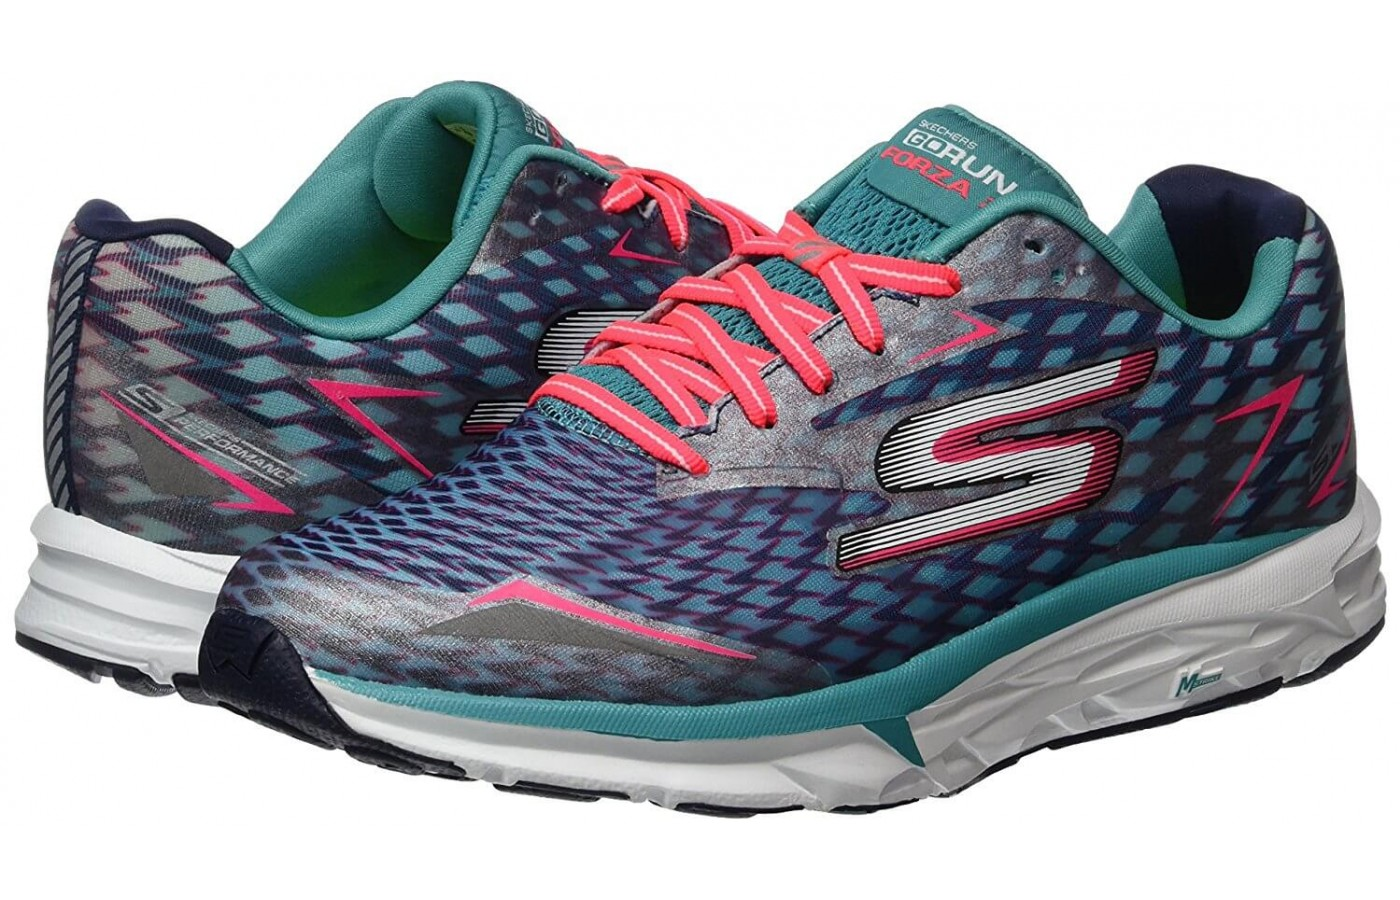 The Skechers GoRUN Forza 2 features reflective detailing